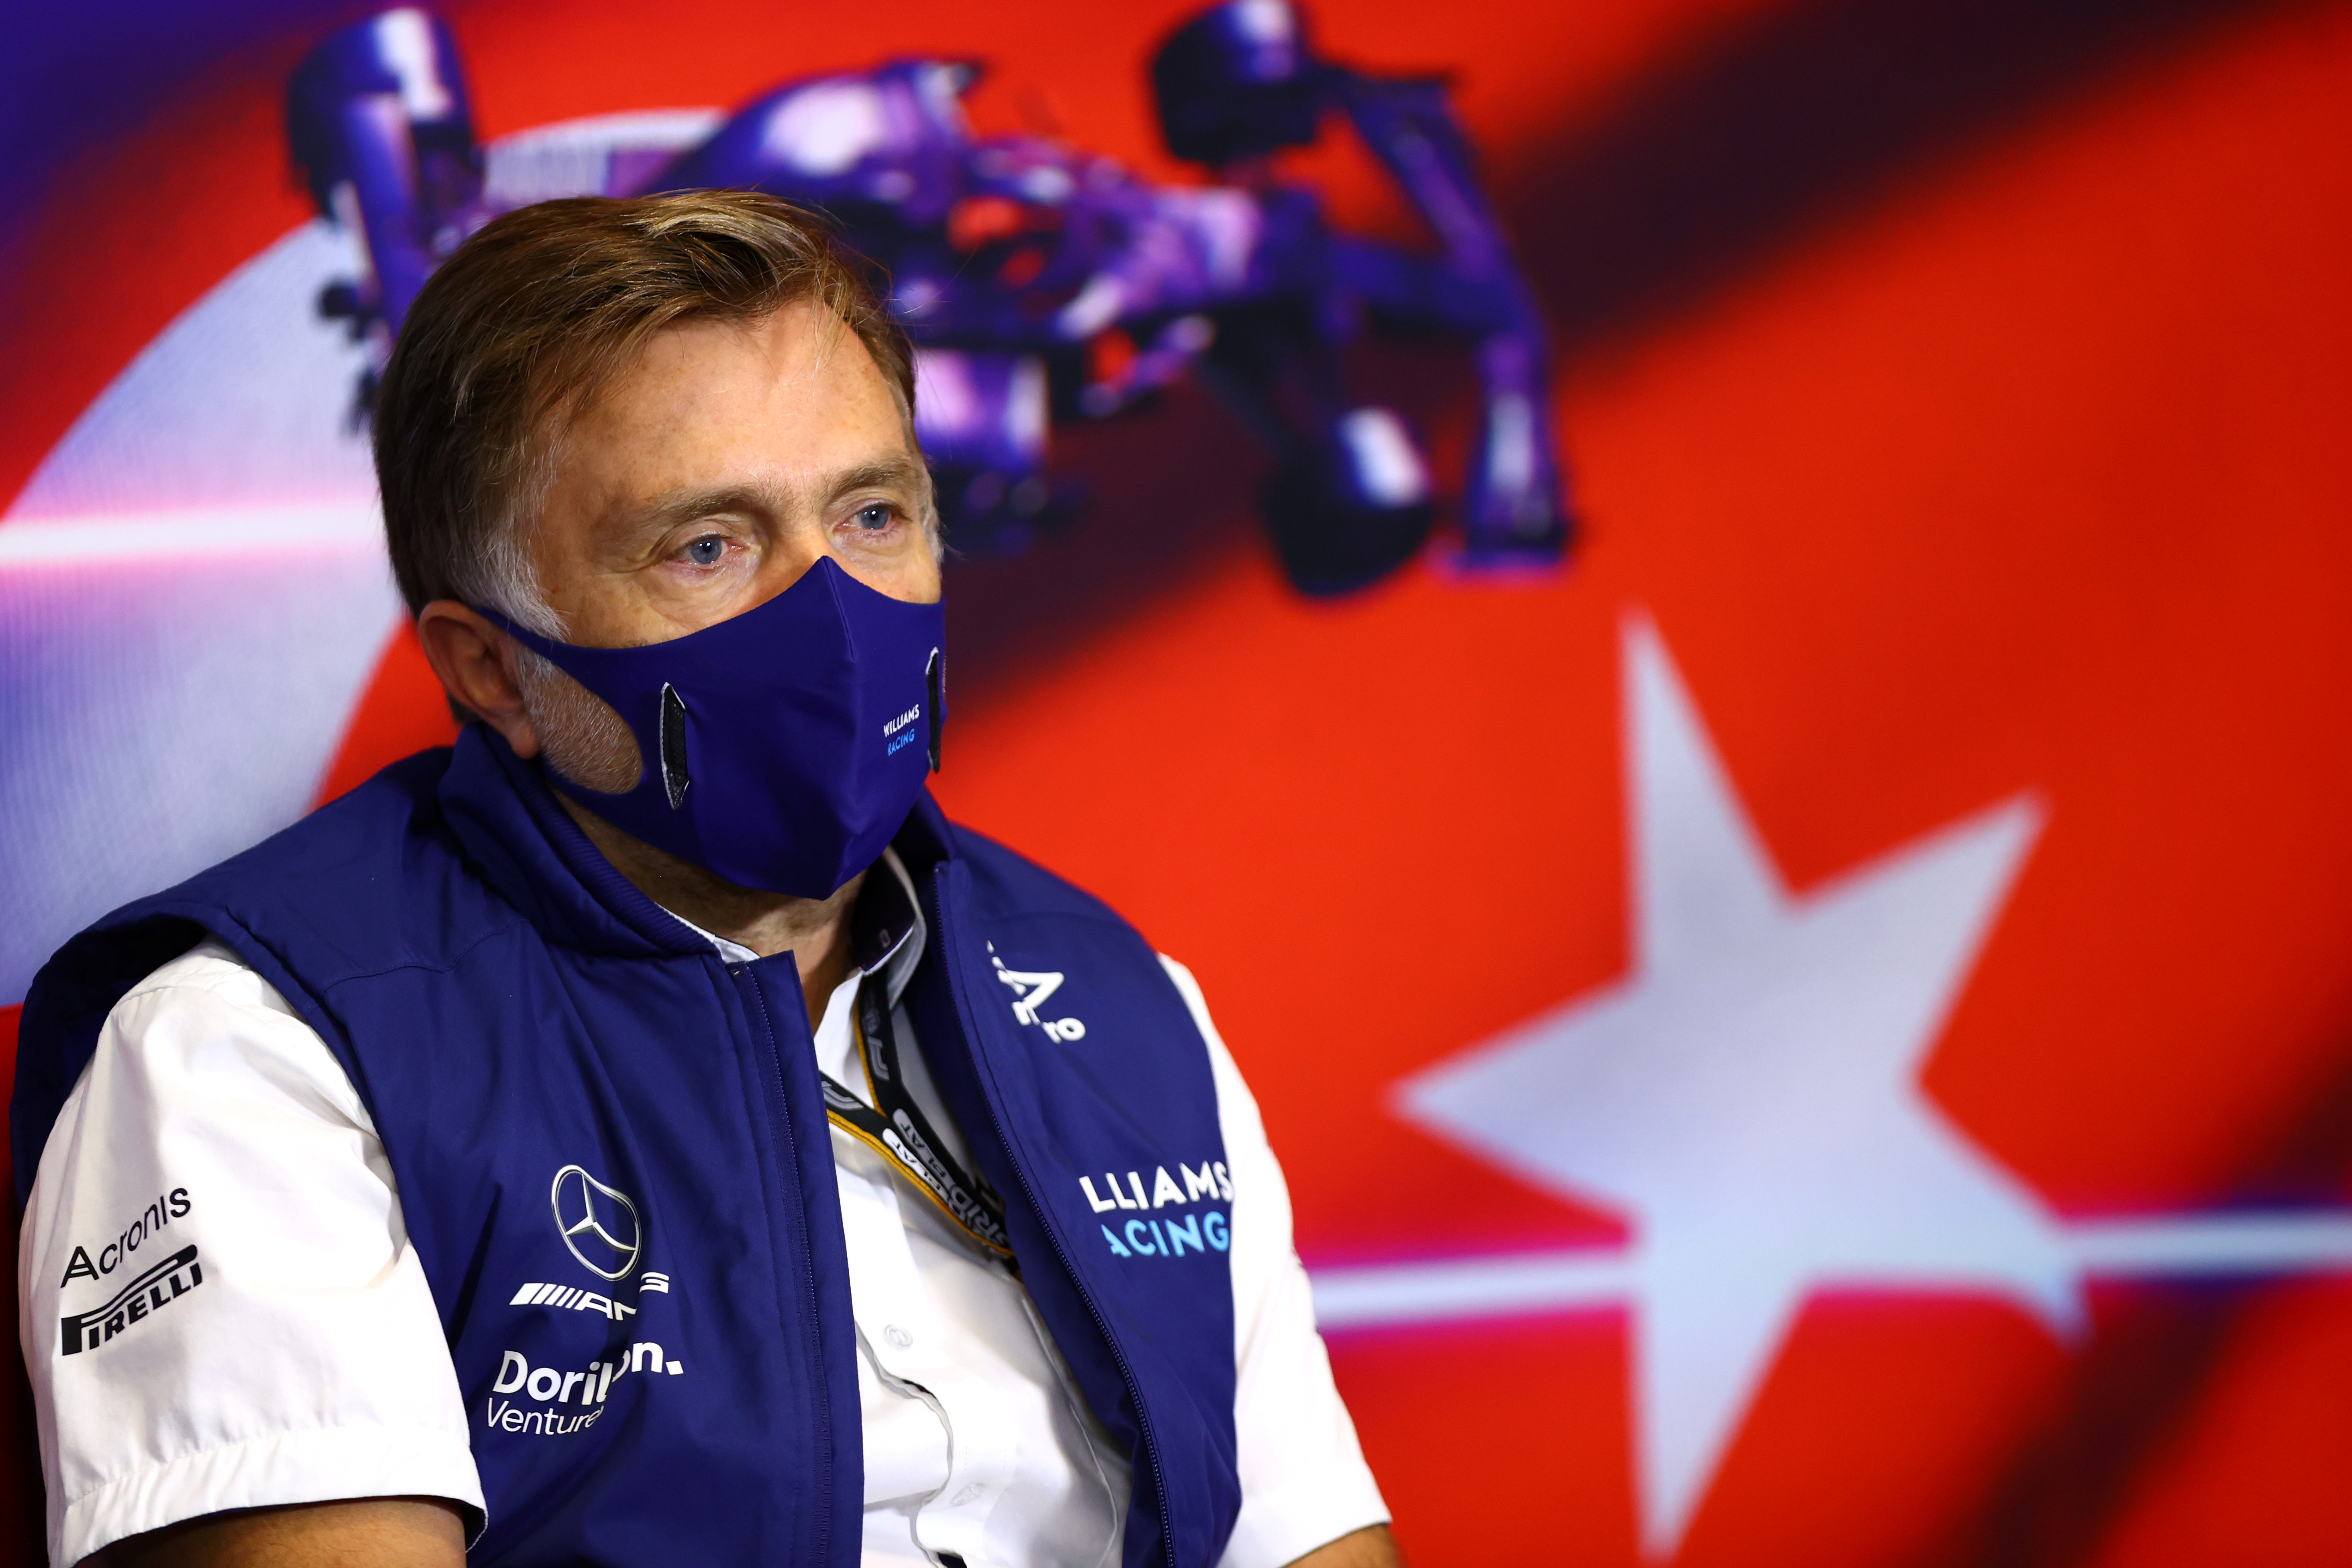 Formula One F1 - Turkish Grand Prix - Intercity Istanbul Park, Istanbul, Turkey - October 8, 2021  Jost Capito, CEO of Williams during the press conference  FIA/Handout via REUTERS